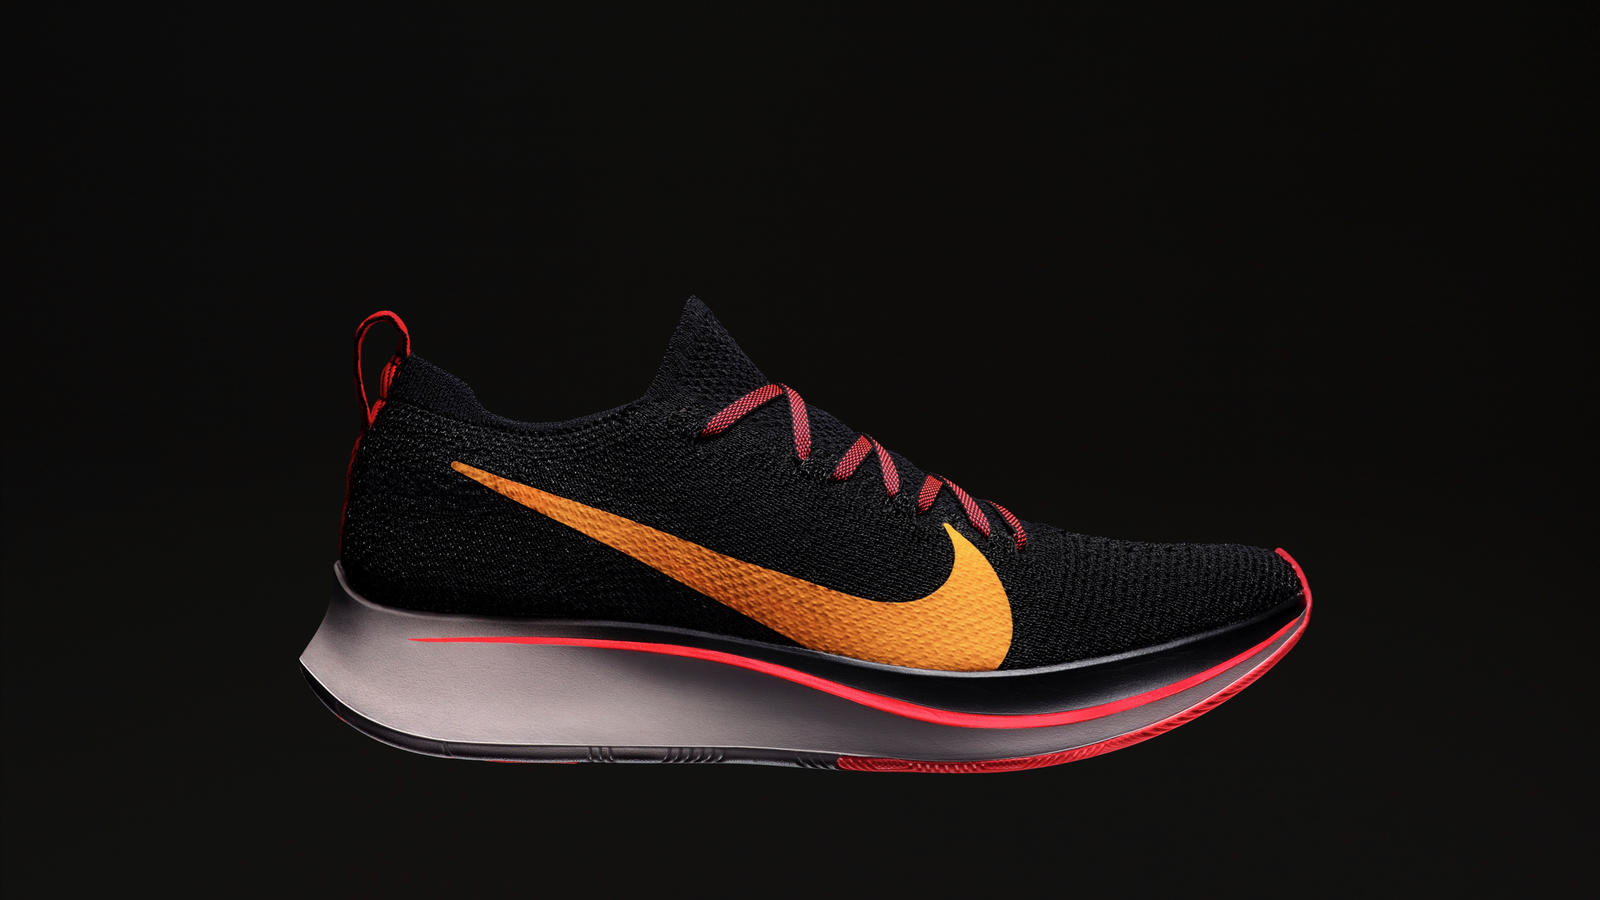 2nike zoom fly fk